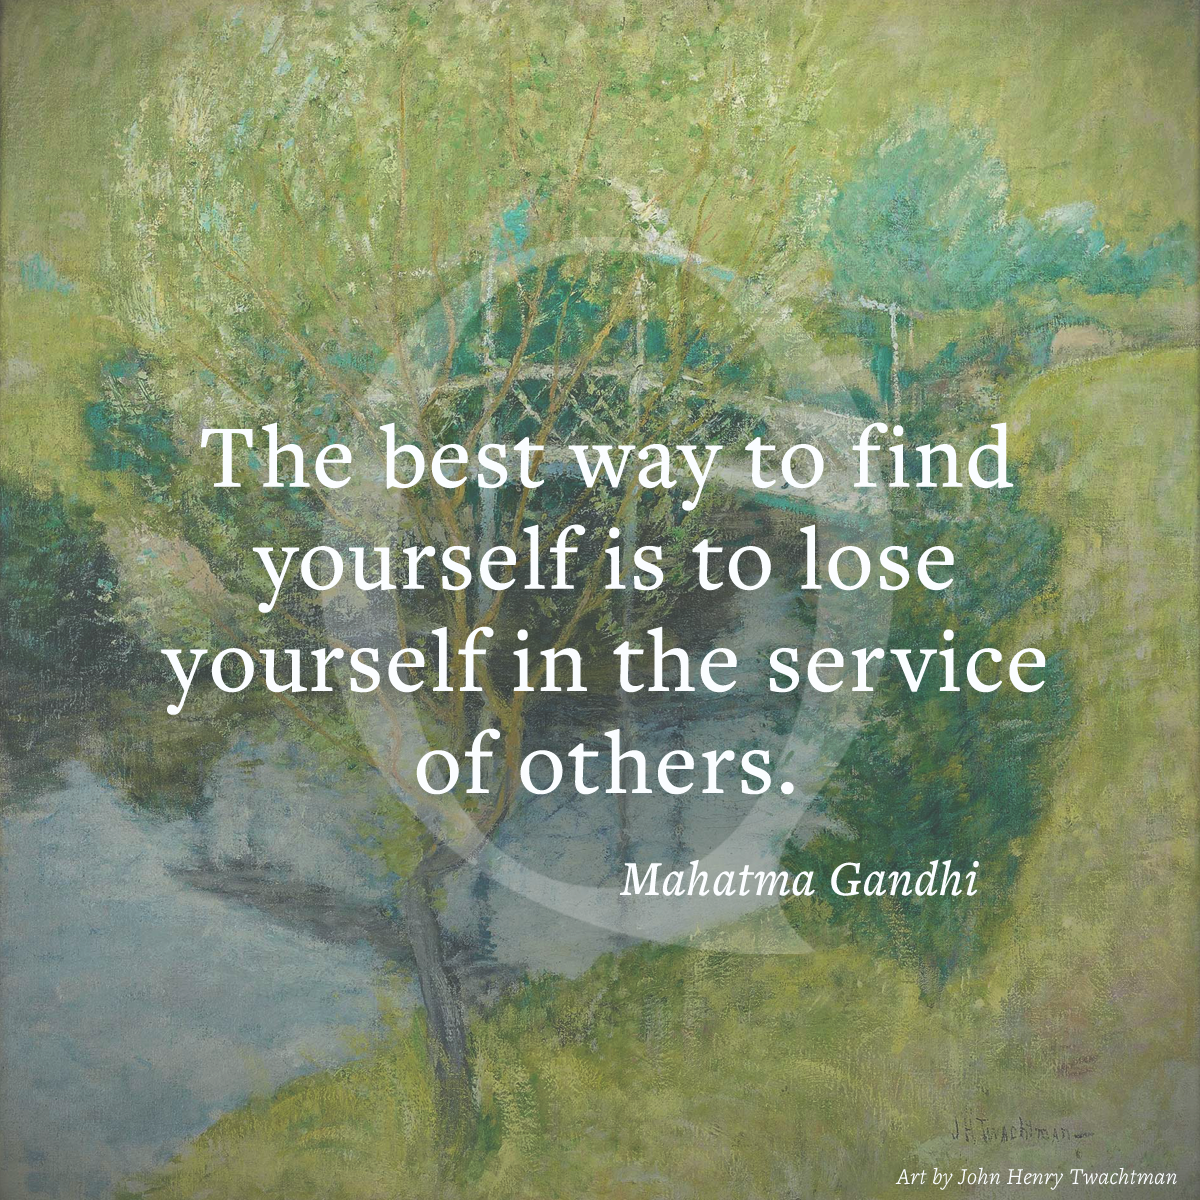 Quotes About Helping Others Your Best Self And Motivation May Appear When You Focus Your